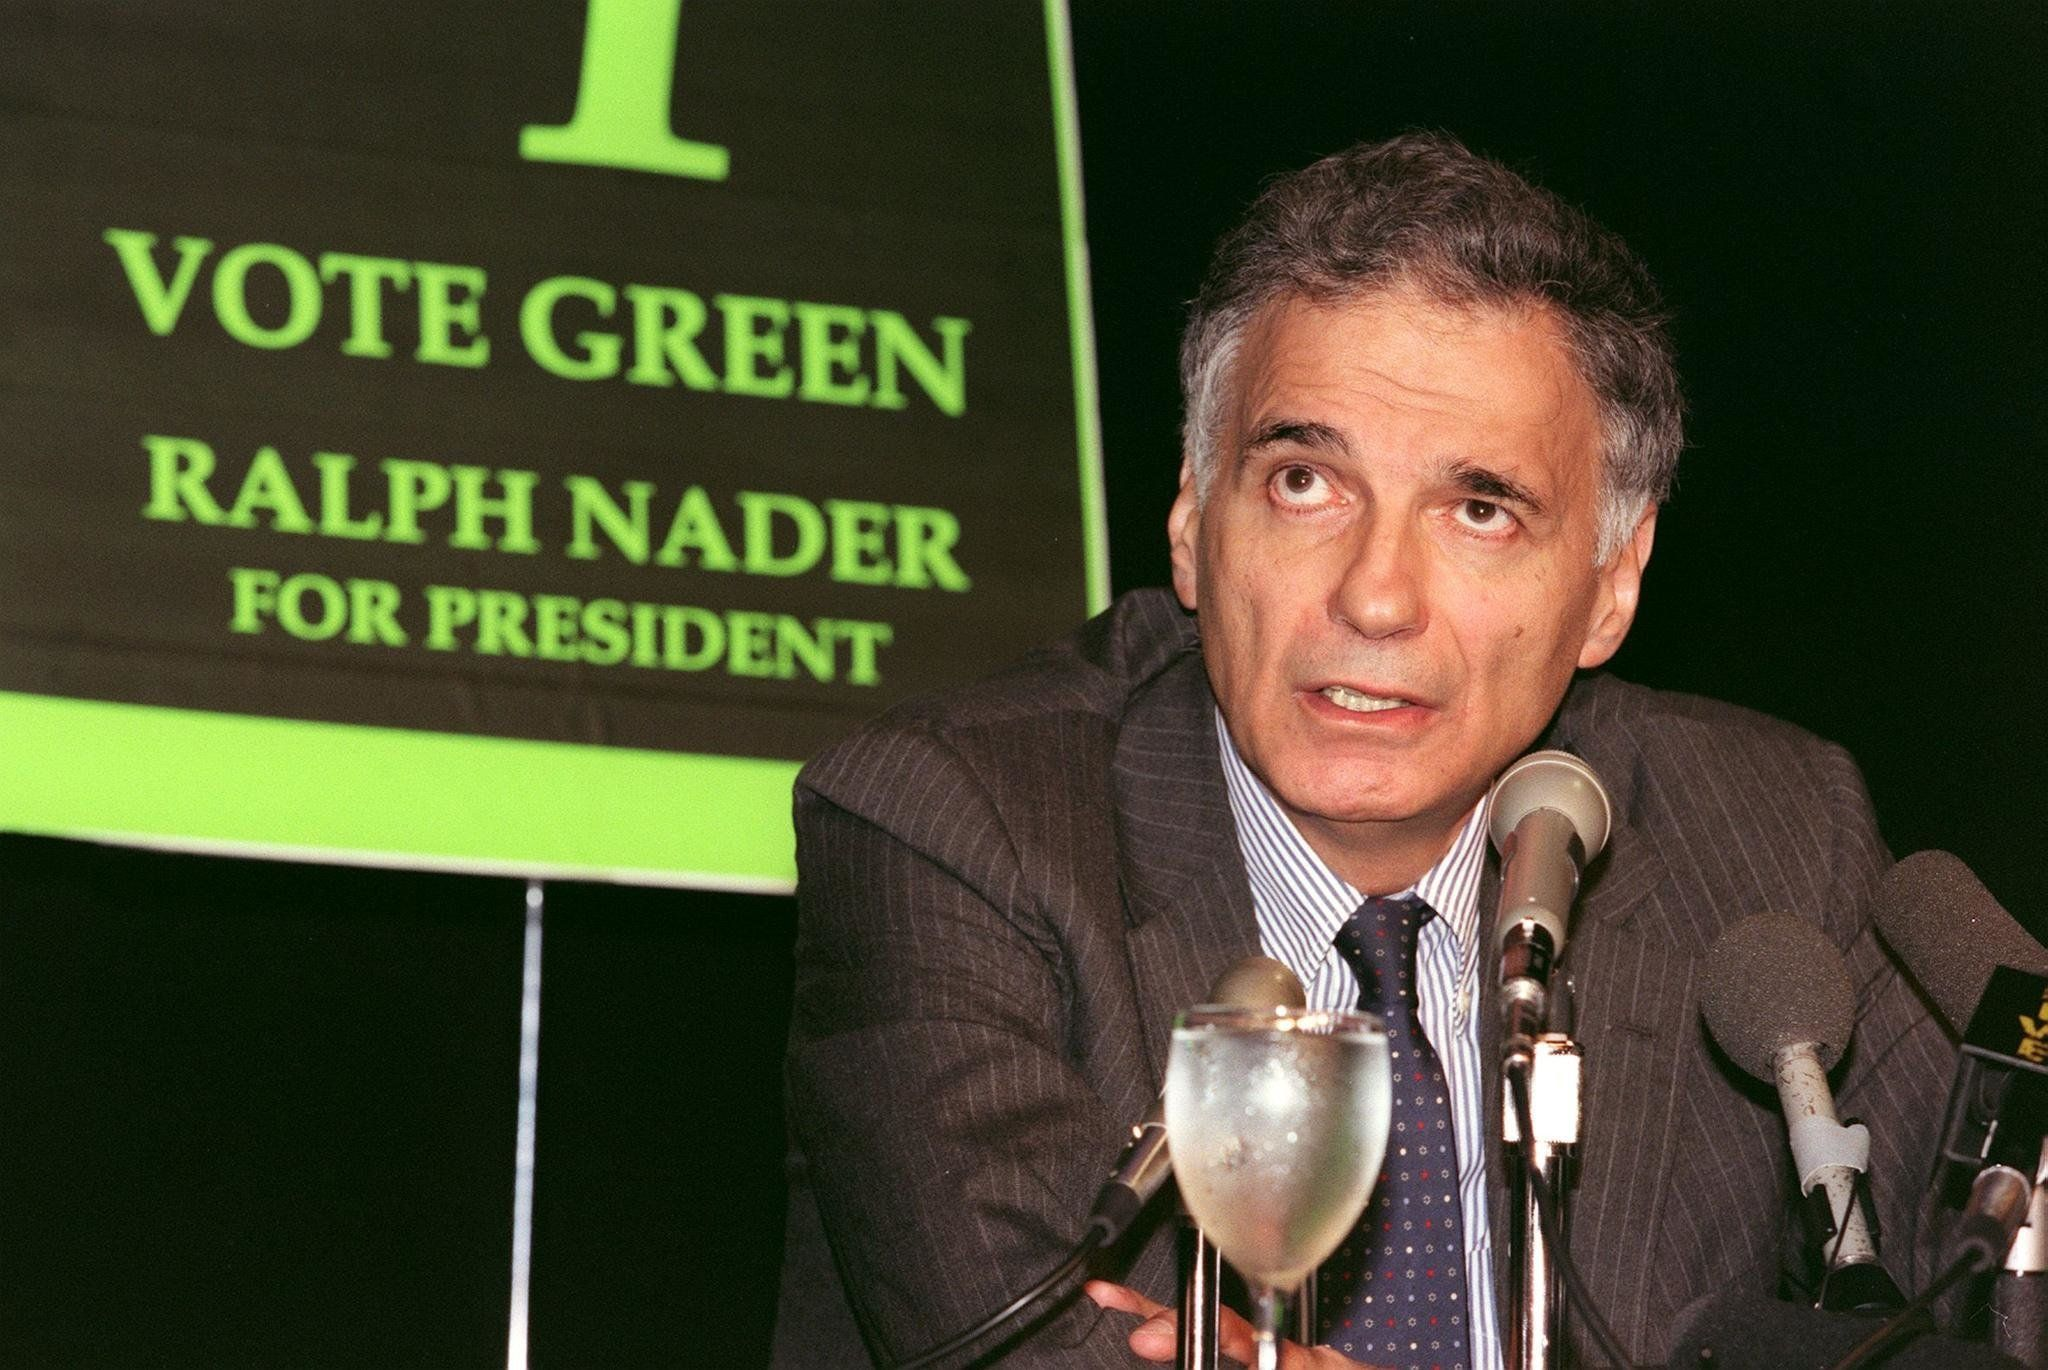 LOS ANGELES, UNITED STATES:  US consumer rights activist Ralph Nader shown in a file photo dated 19 August 1996 speaking to reporters at a news conference at the University of California of Los Angeles. Nader was the Green Party's US presidential candidate in 1996. (Photo credit should read Vince Bucci/AFP/Getty Images)